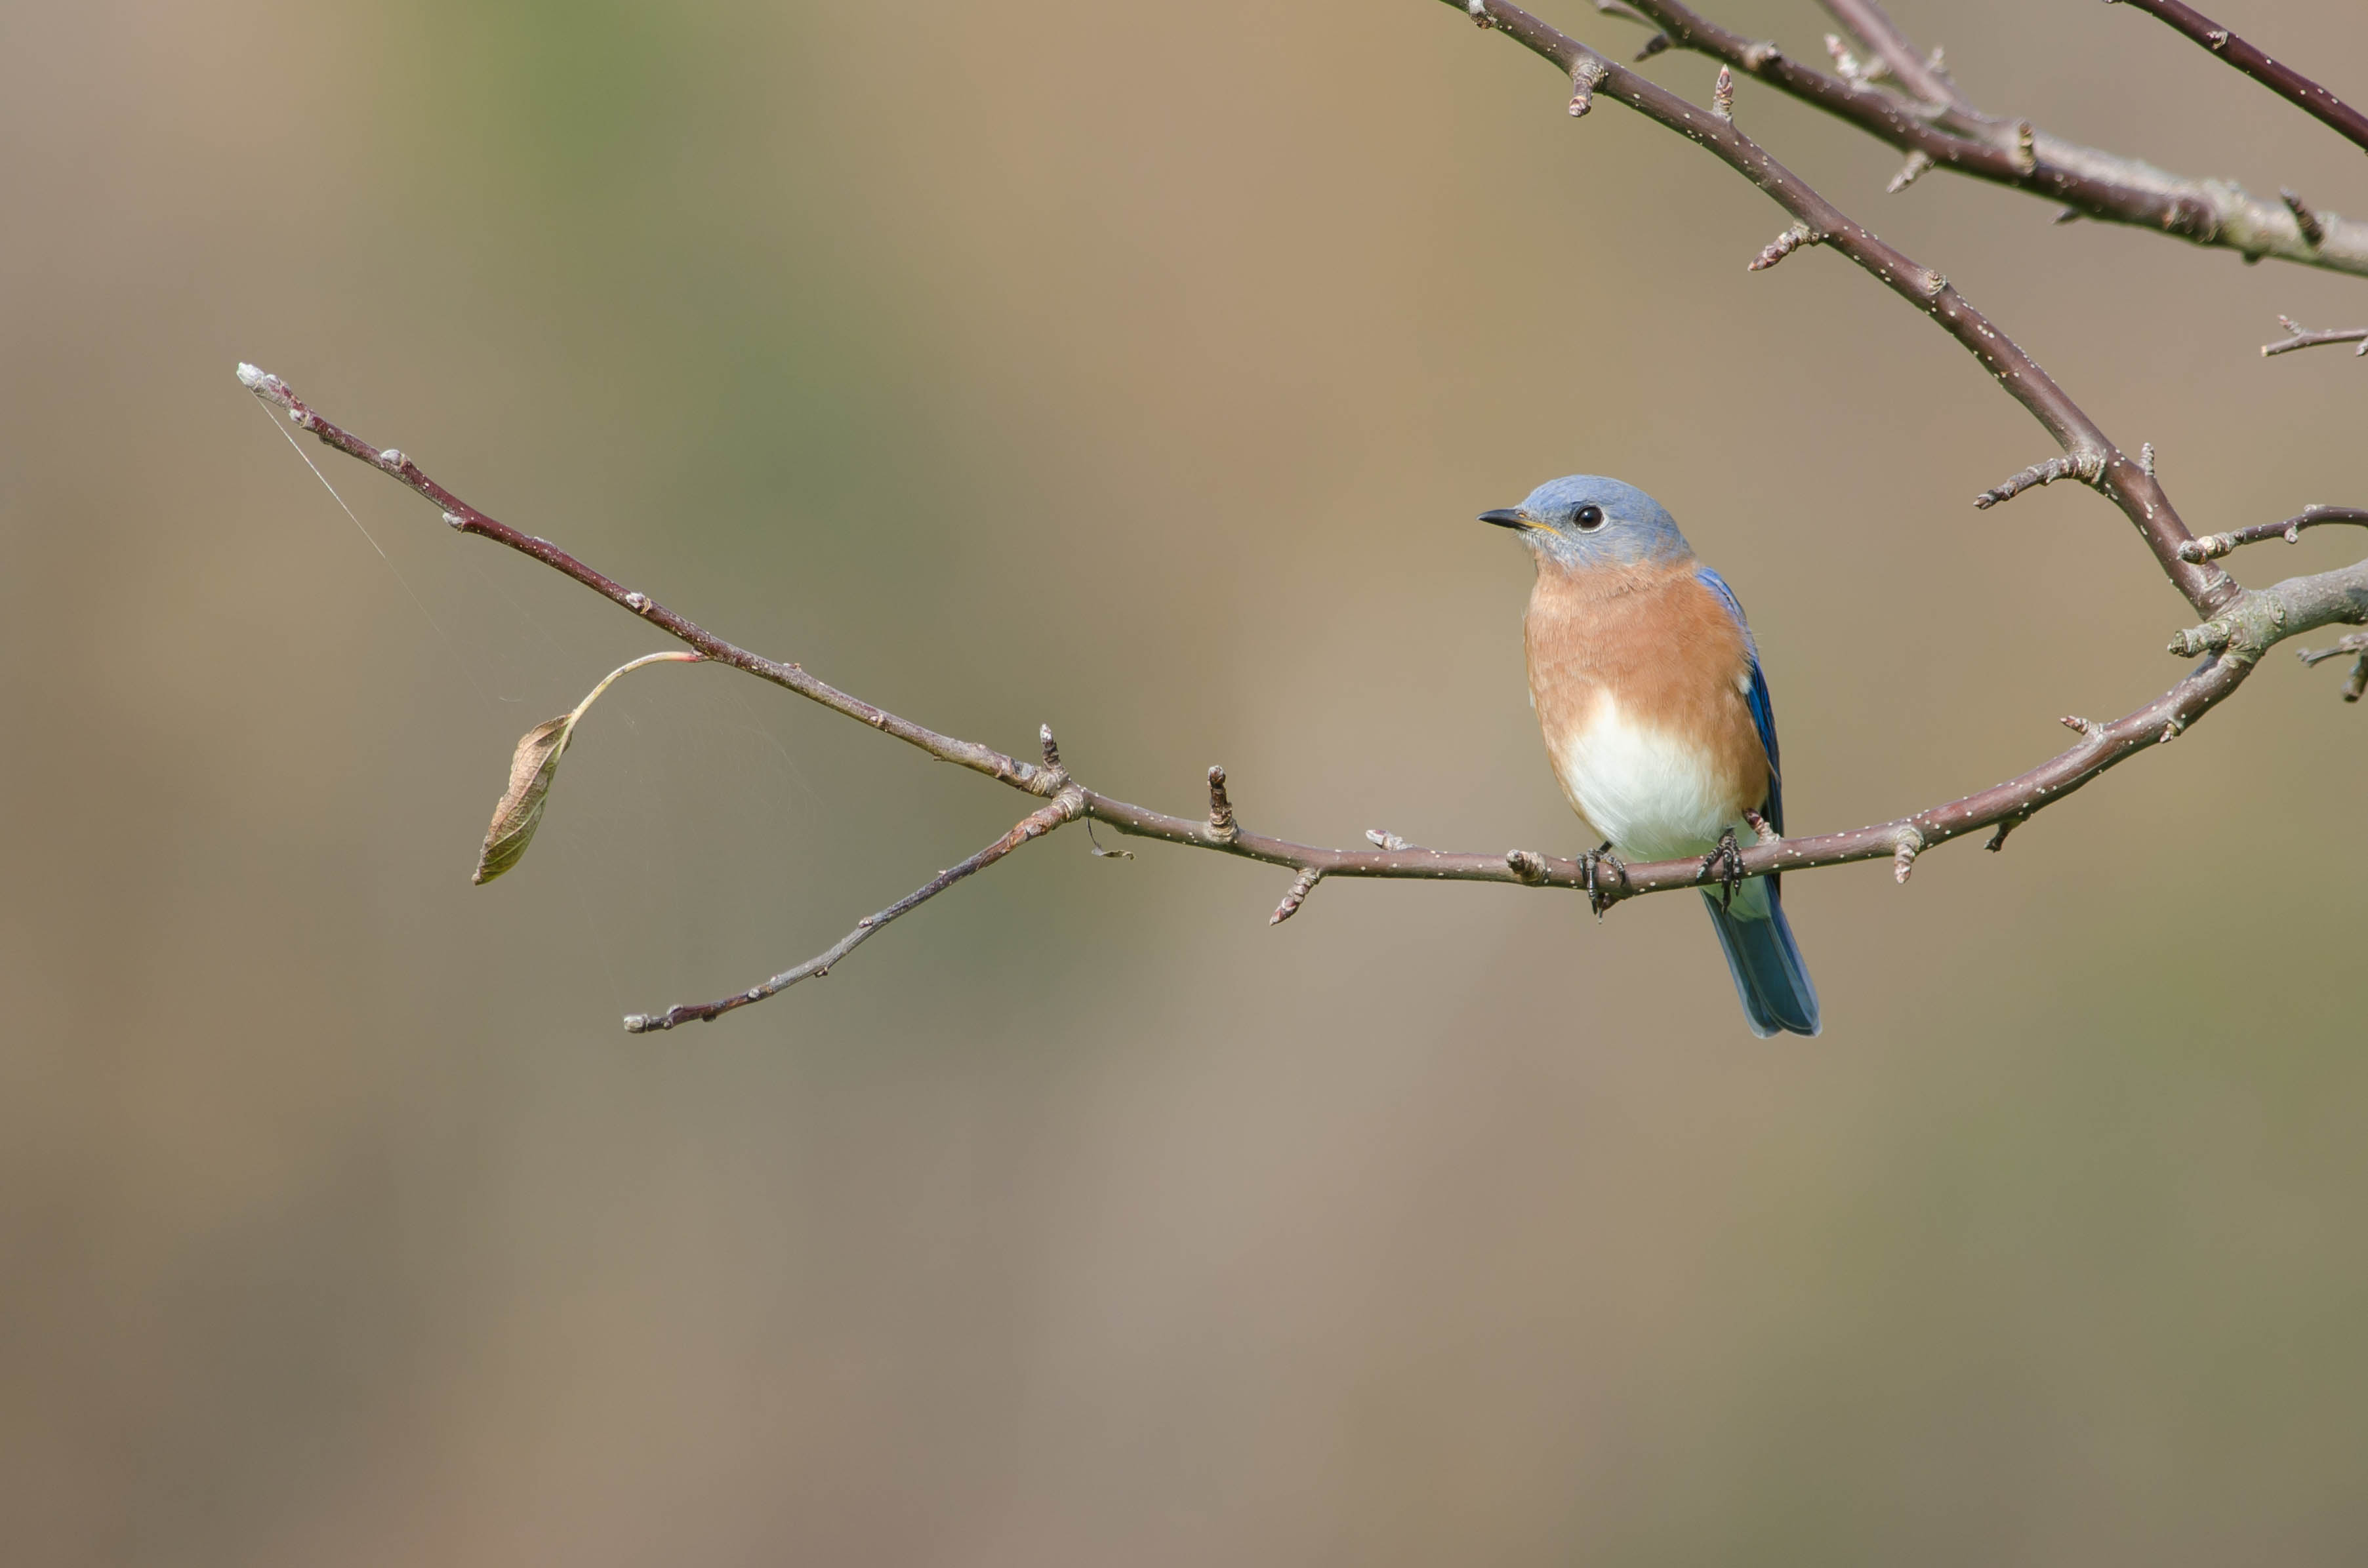 Eastern Bluebird2 by Twan Leenders